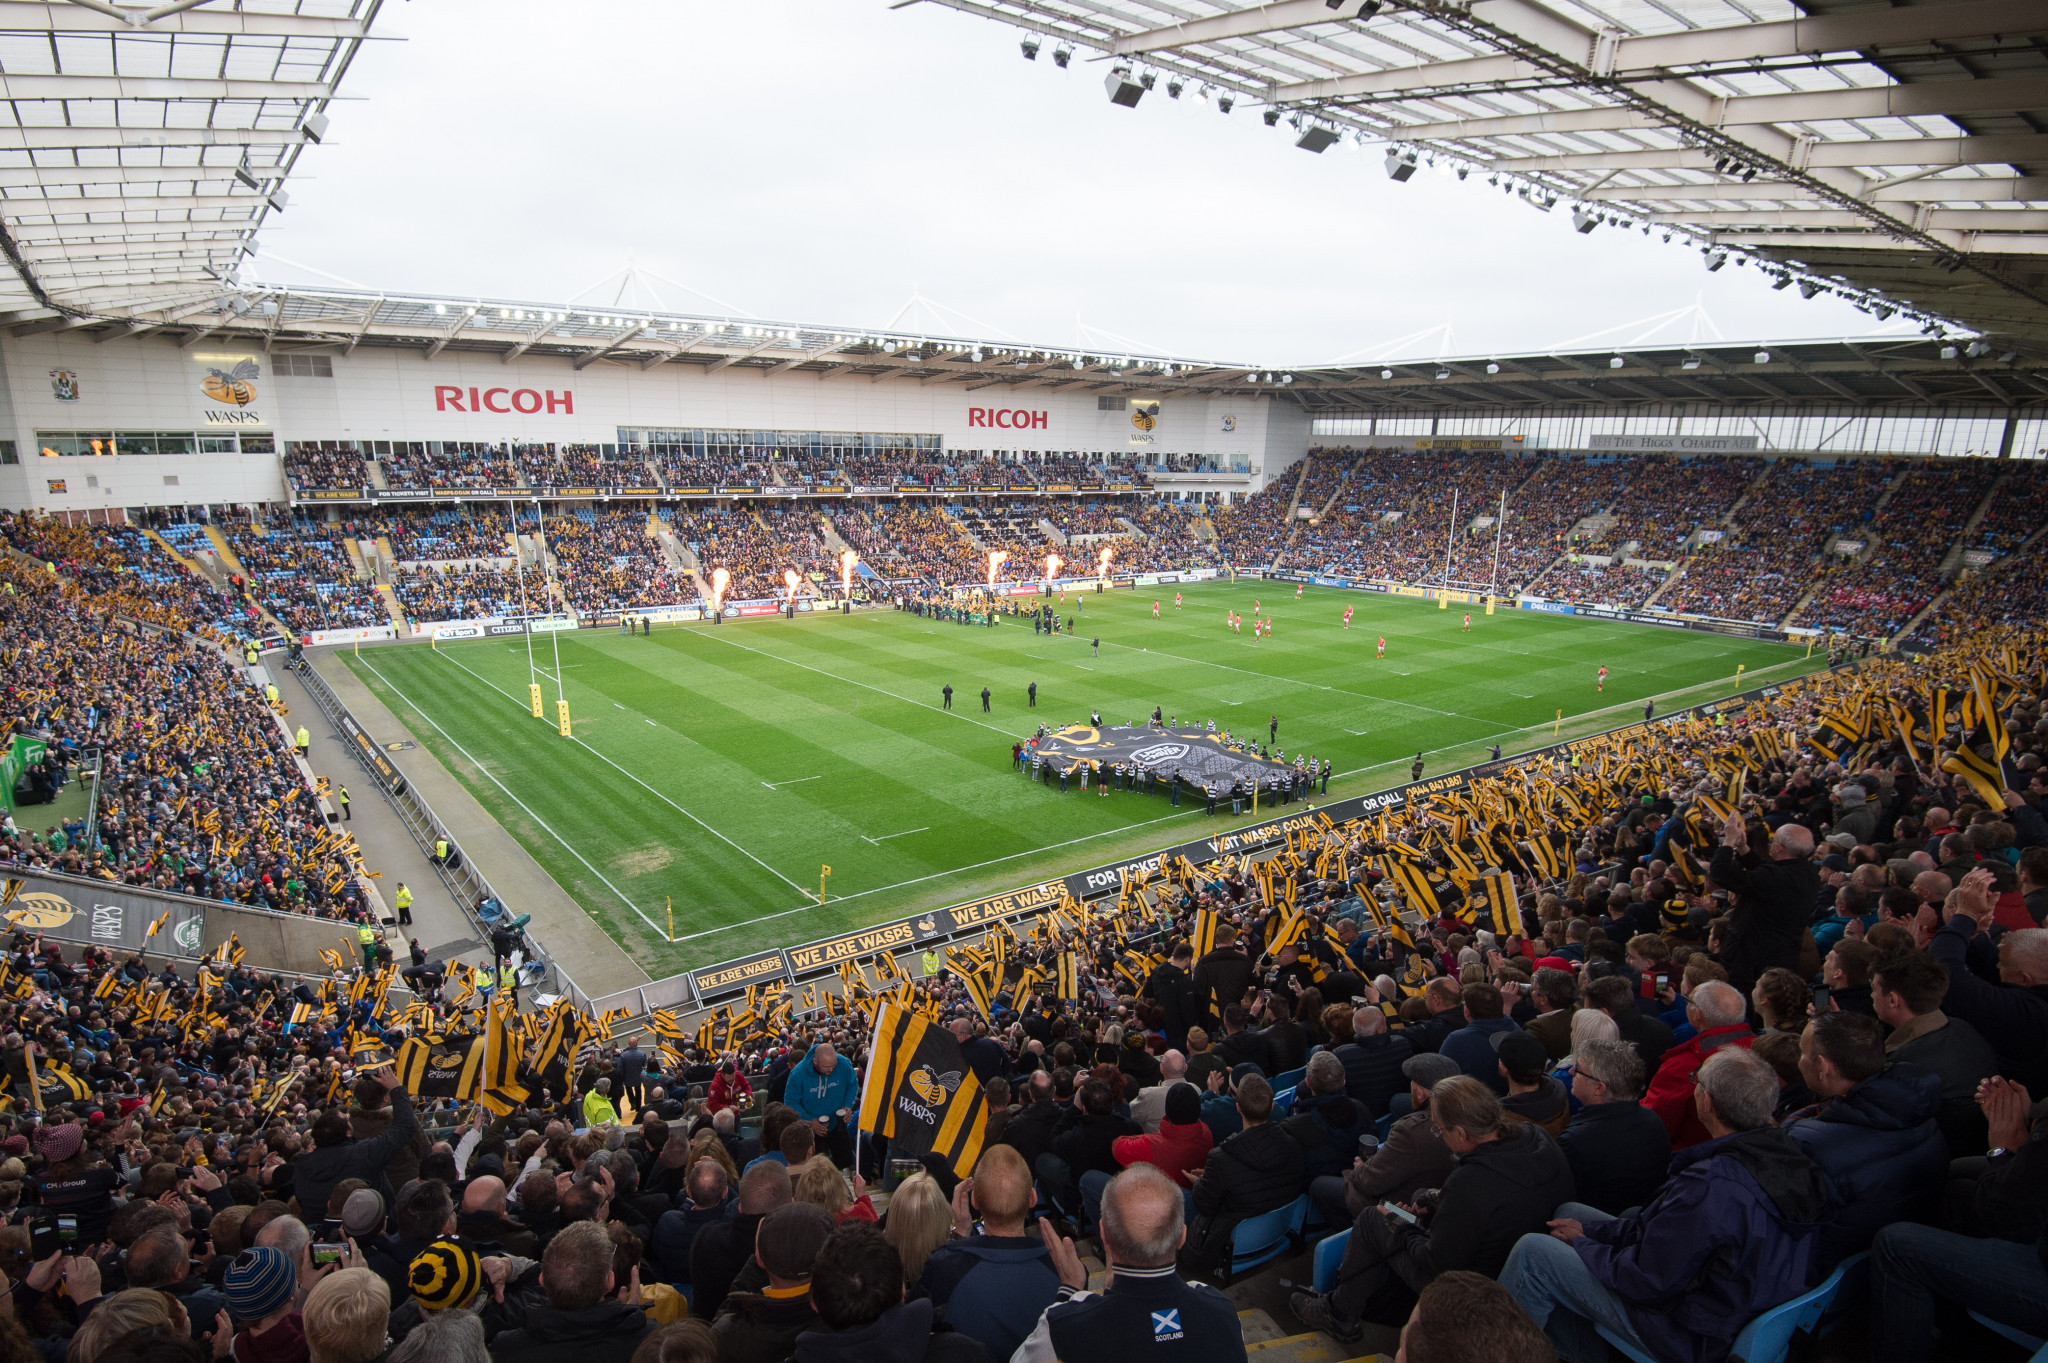 The Ricoh Arena in Coventry is the home ground of Premiership Rugby club Wasps ©Getty Images